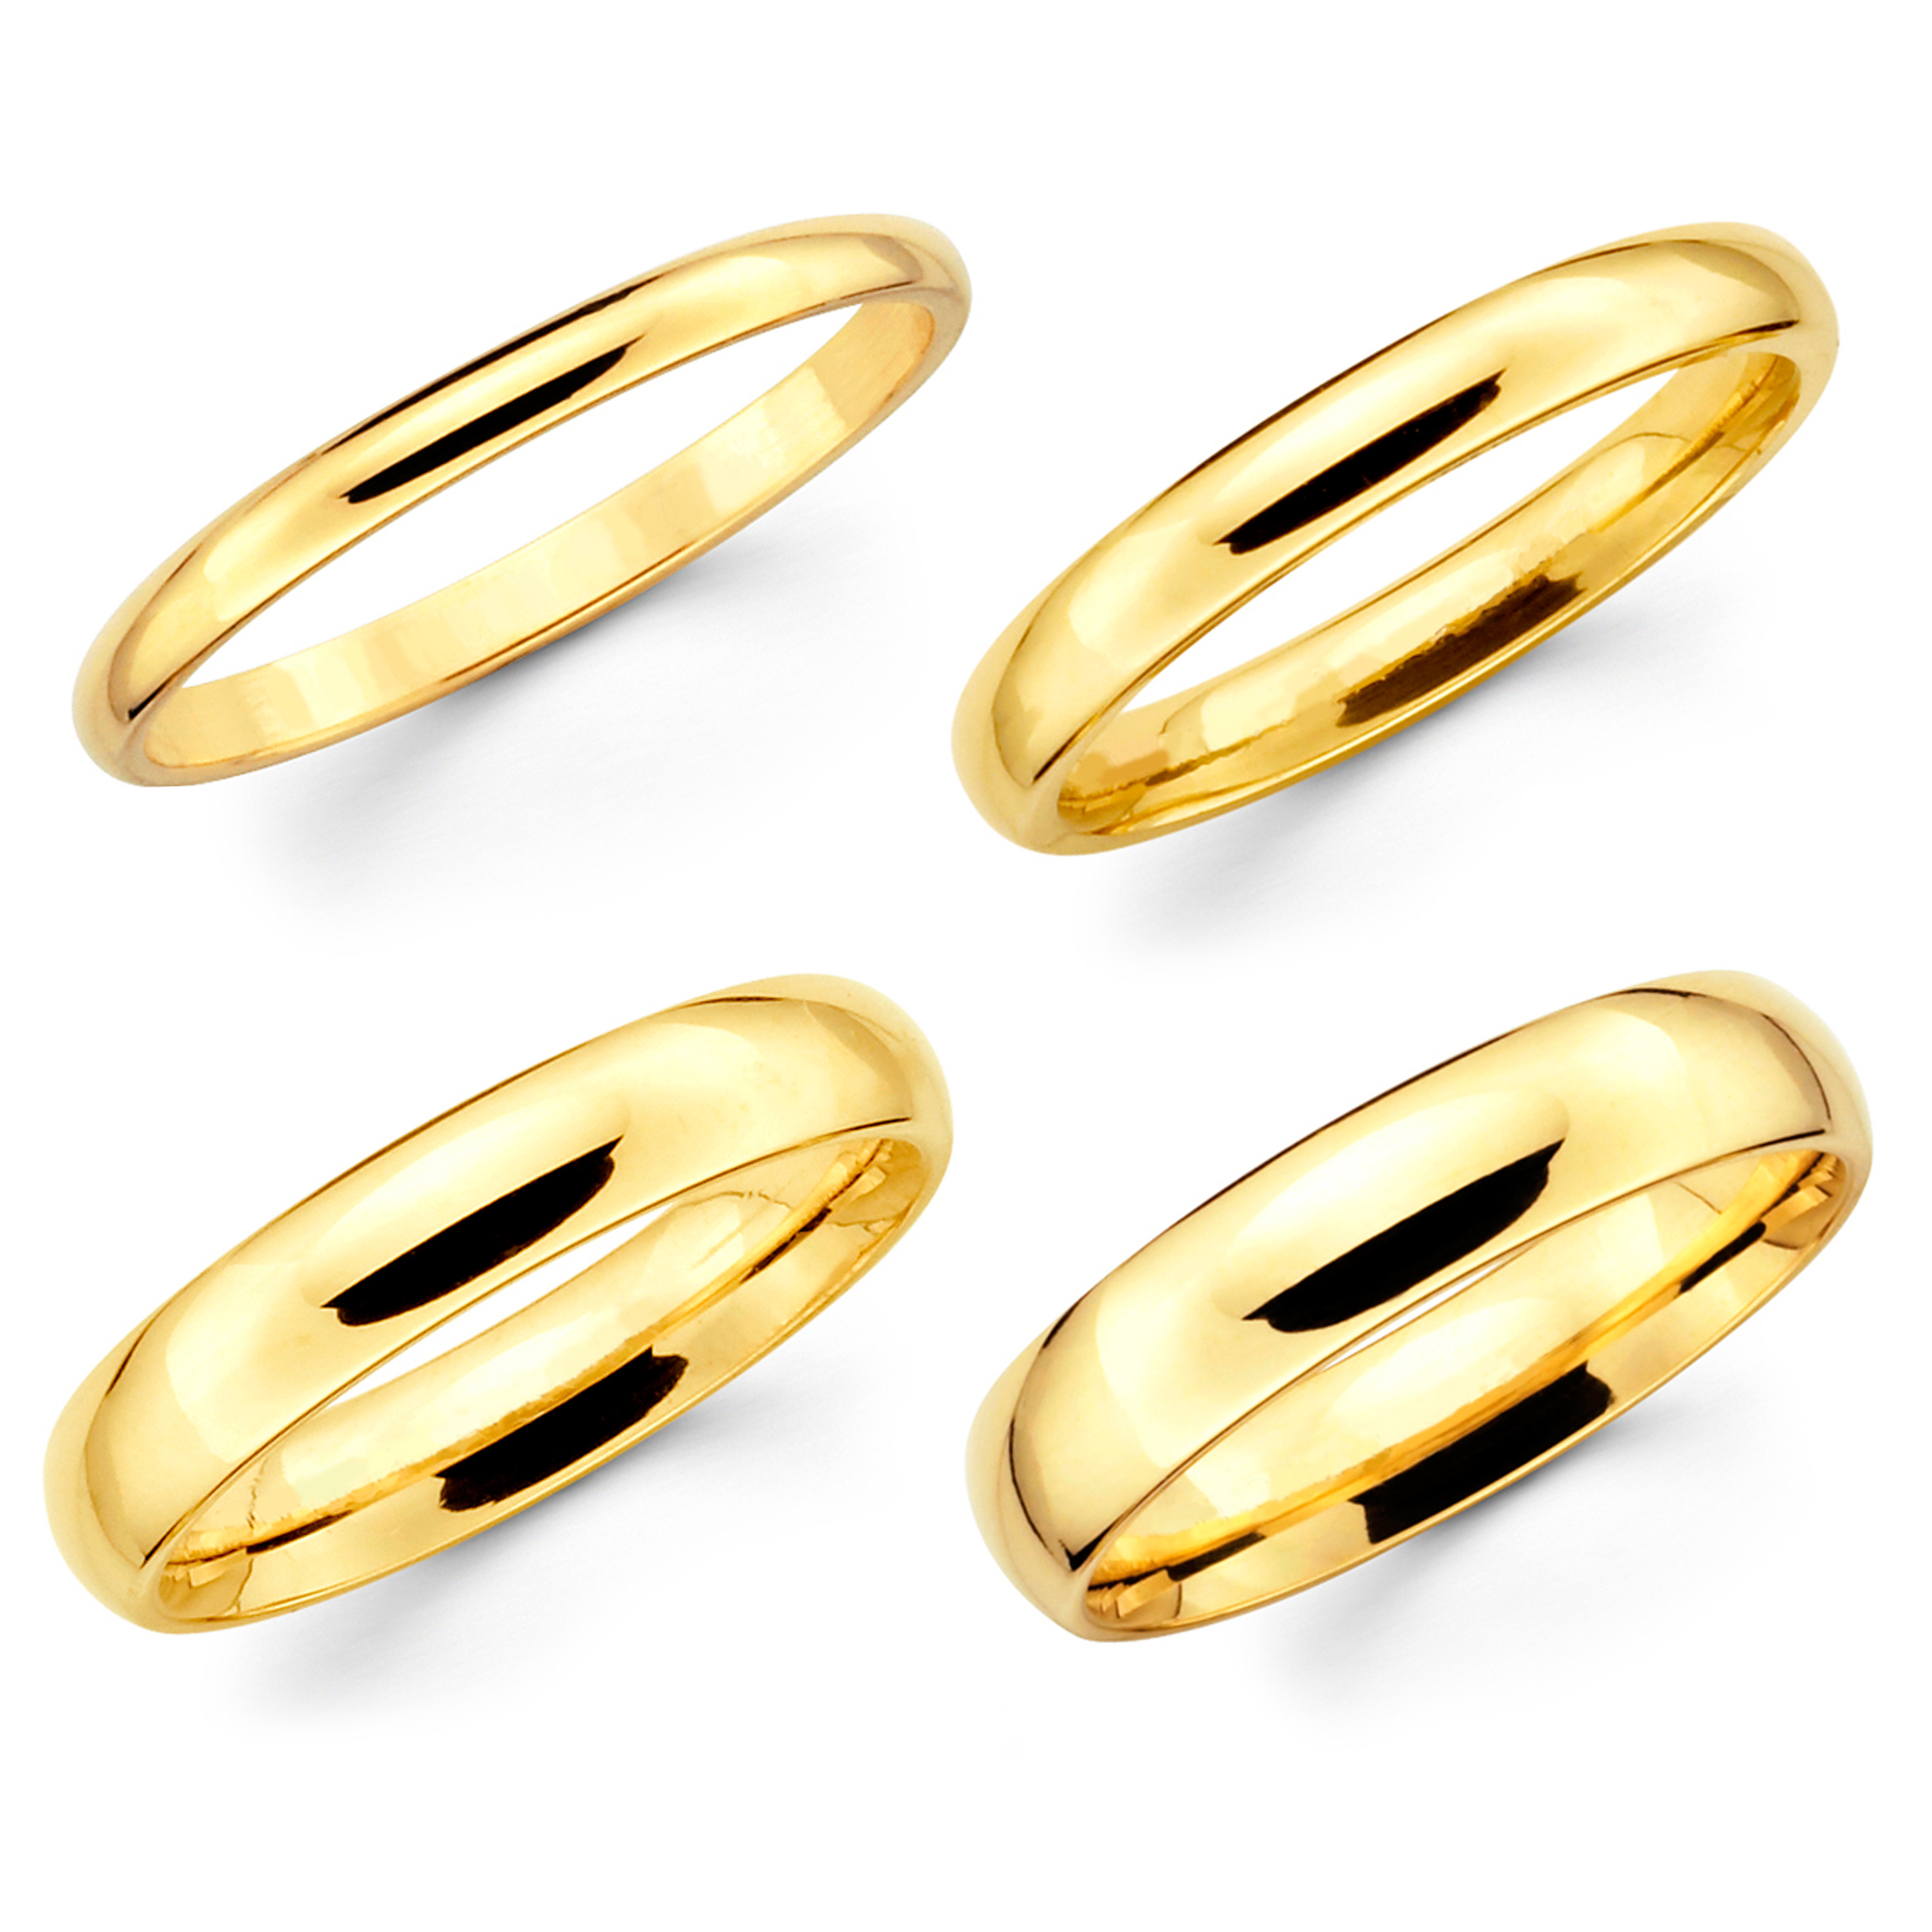 wedding photo pipe email p cut view men wide gold ring yellow tungsten band s flat htm larger bands